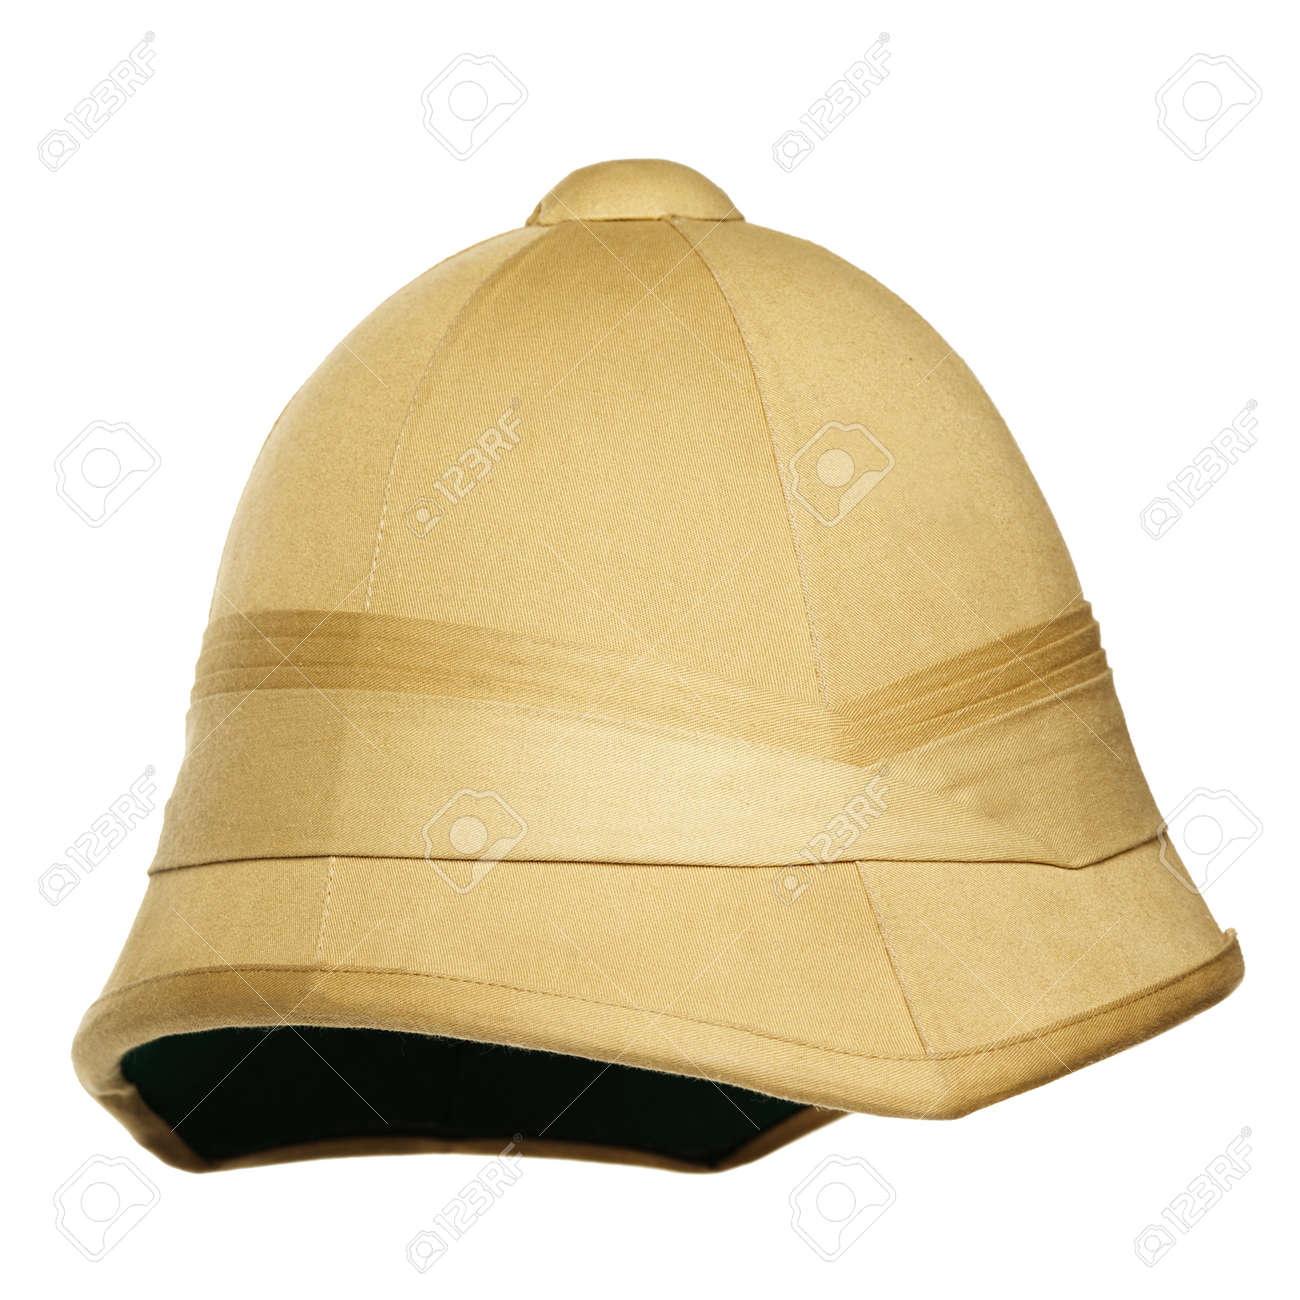 1c747d9f7 yellow safari hat isolated on white background